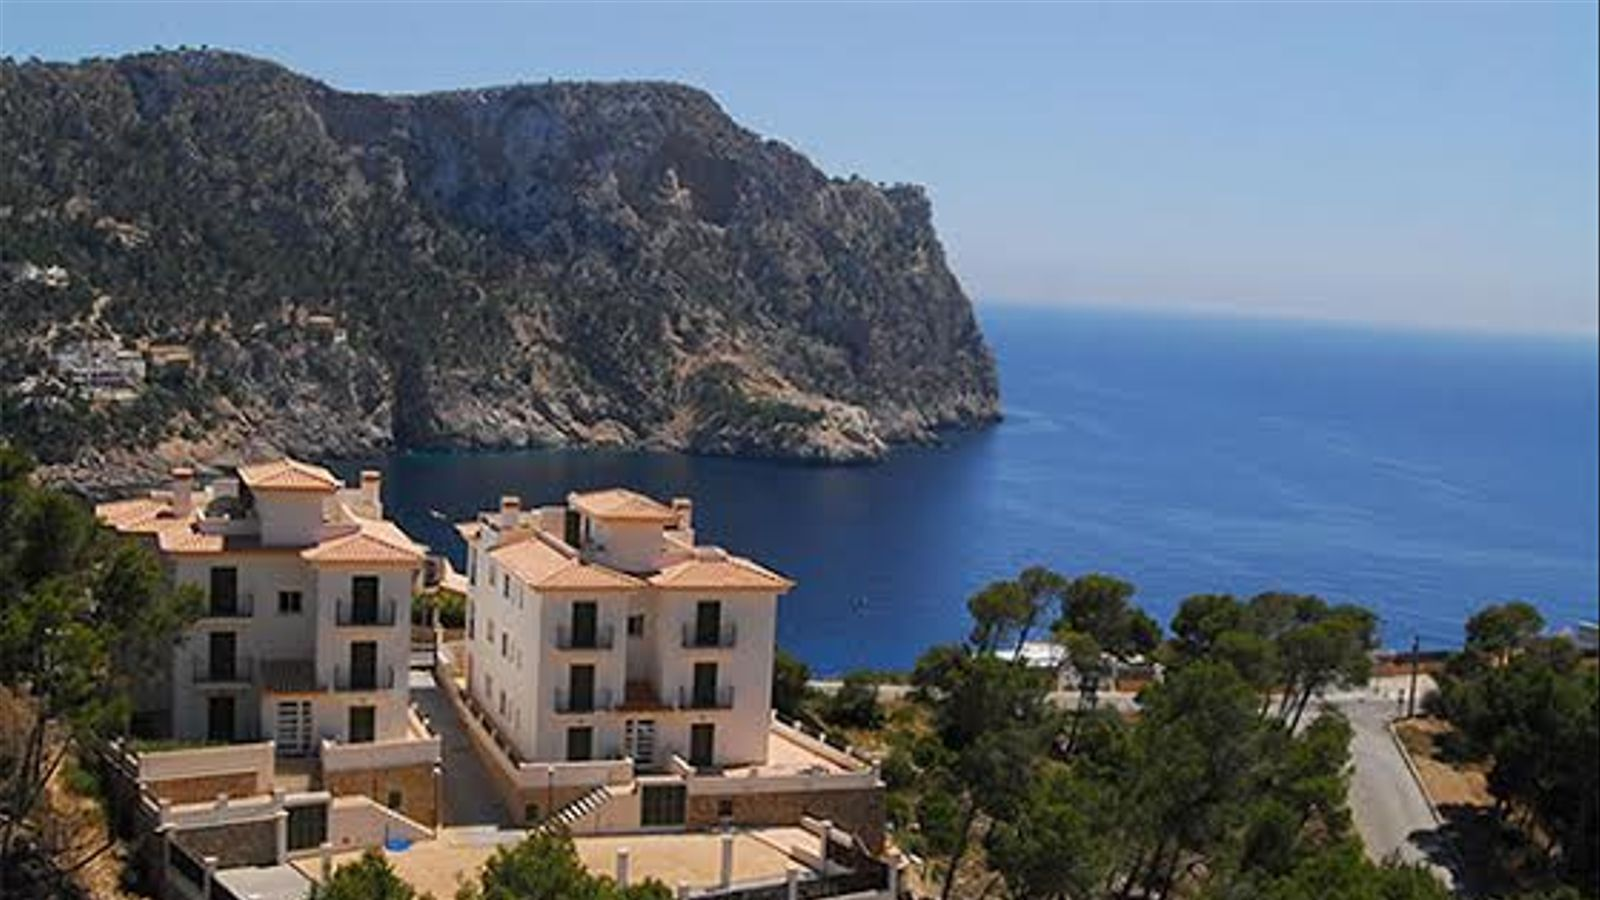 Apartaments de Cala Llamps. / MICHELS